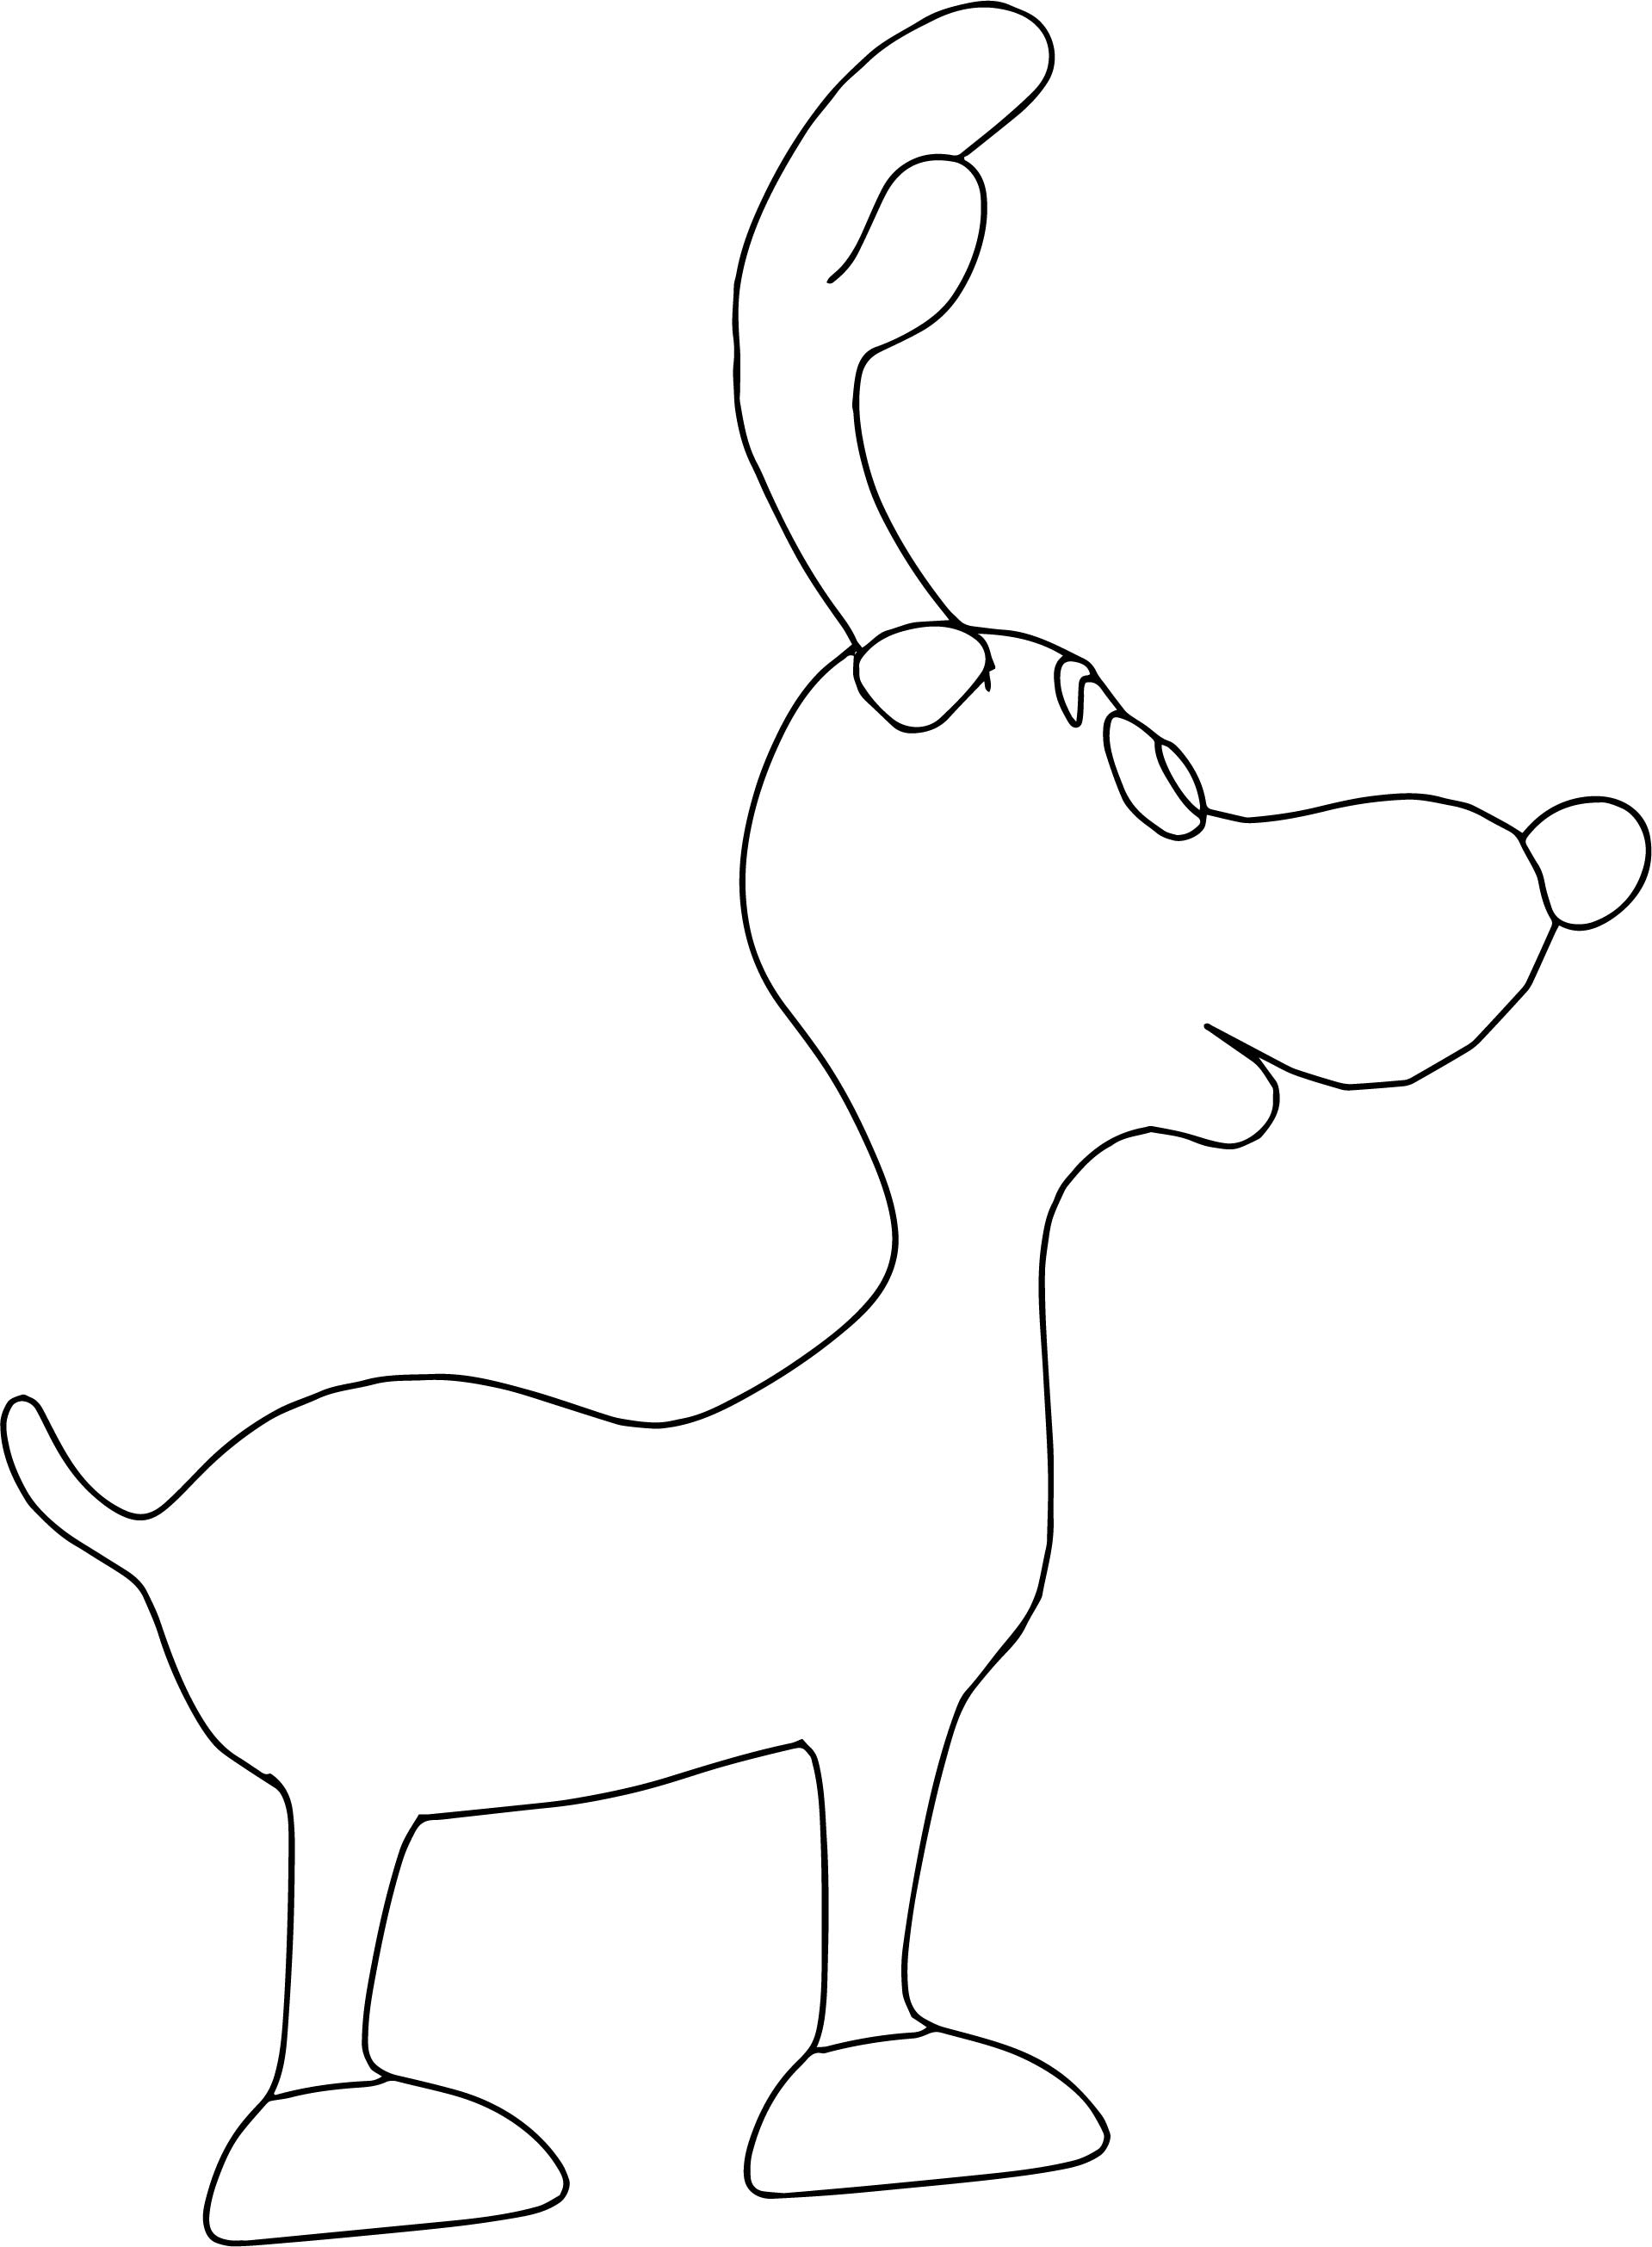 Deer Left View Coloring Page